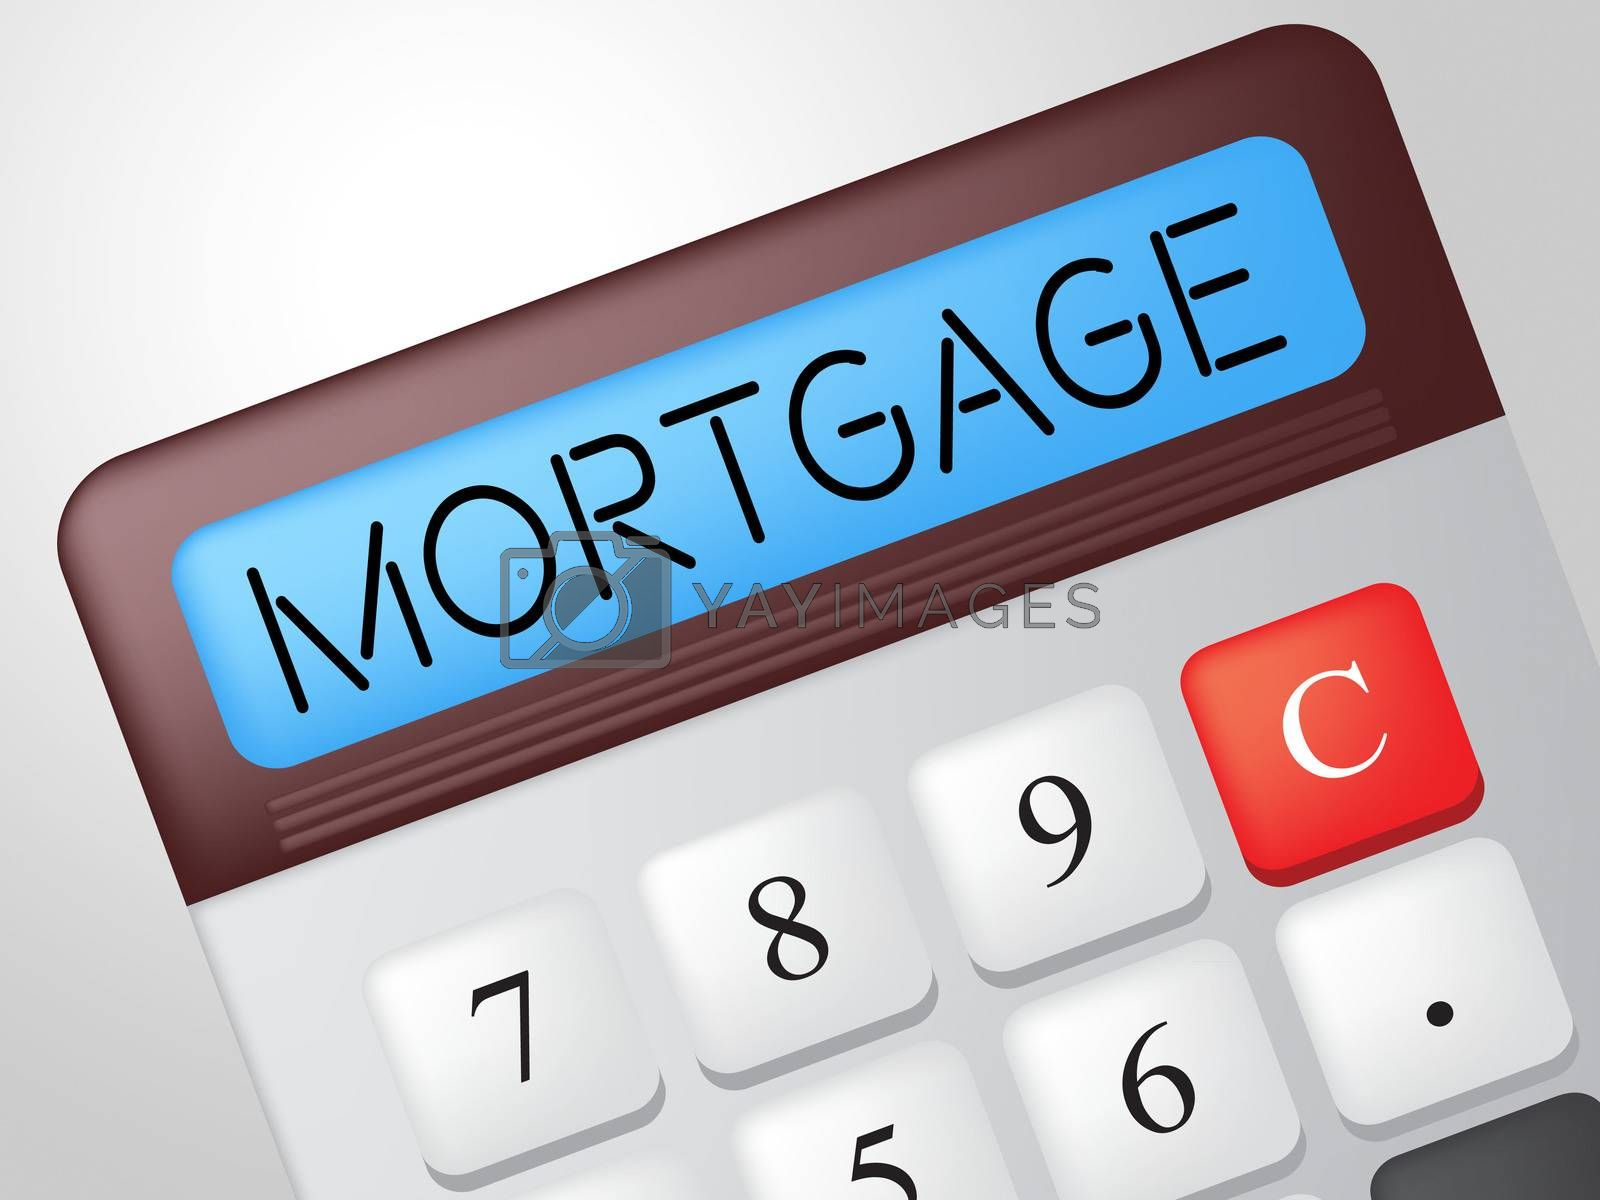 Mortgage Calculator Indicates Borrow Money And Calculate by stuartmiles